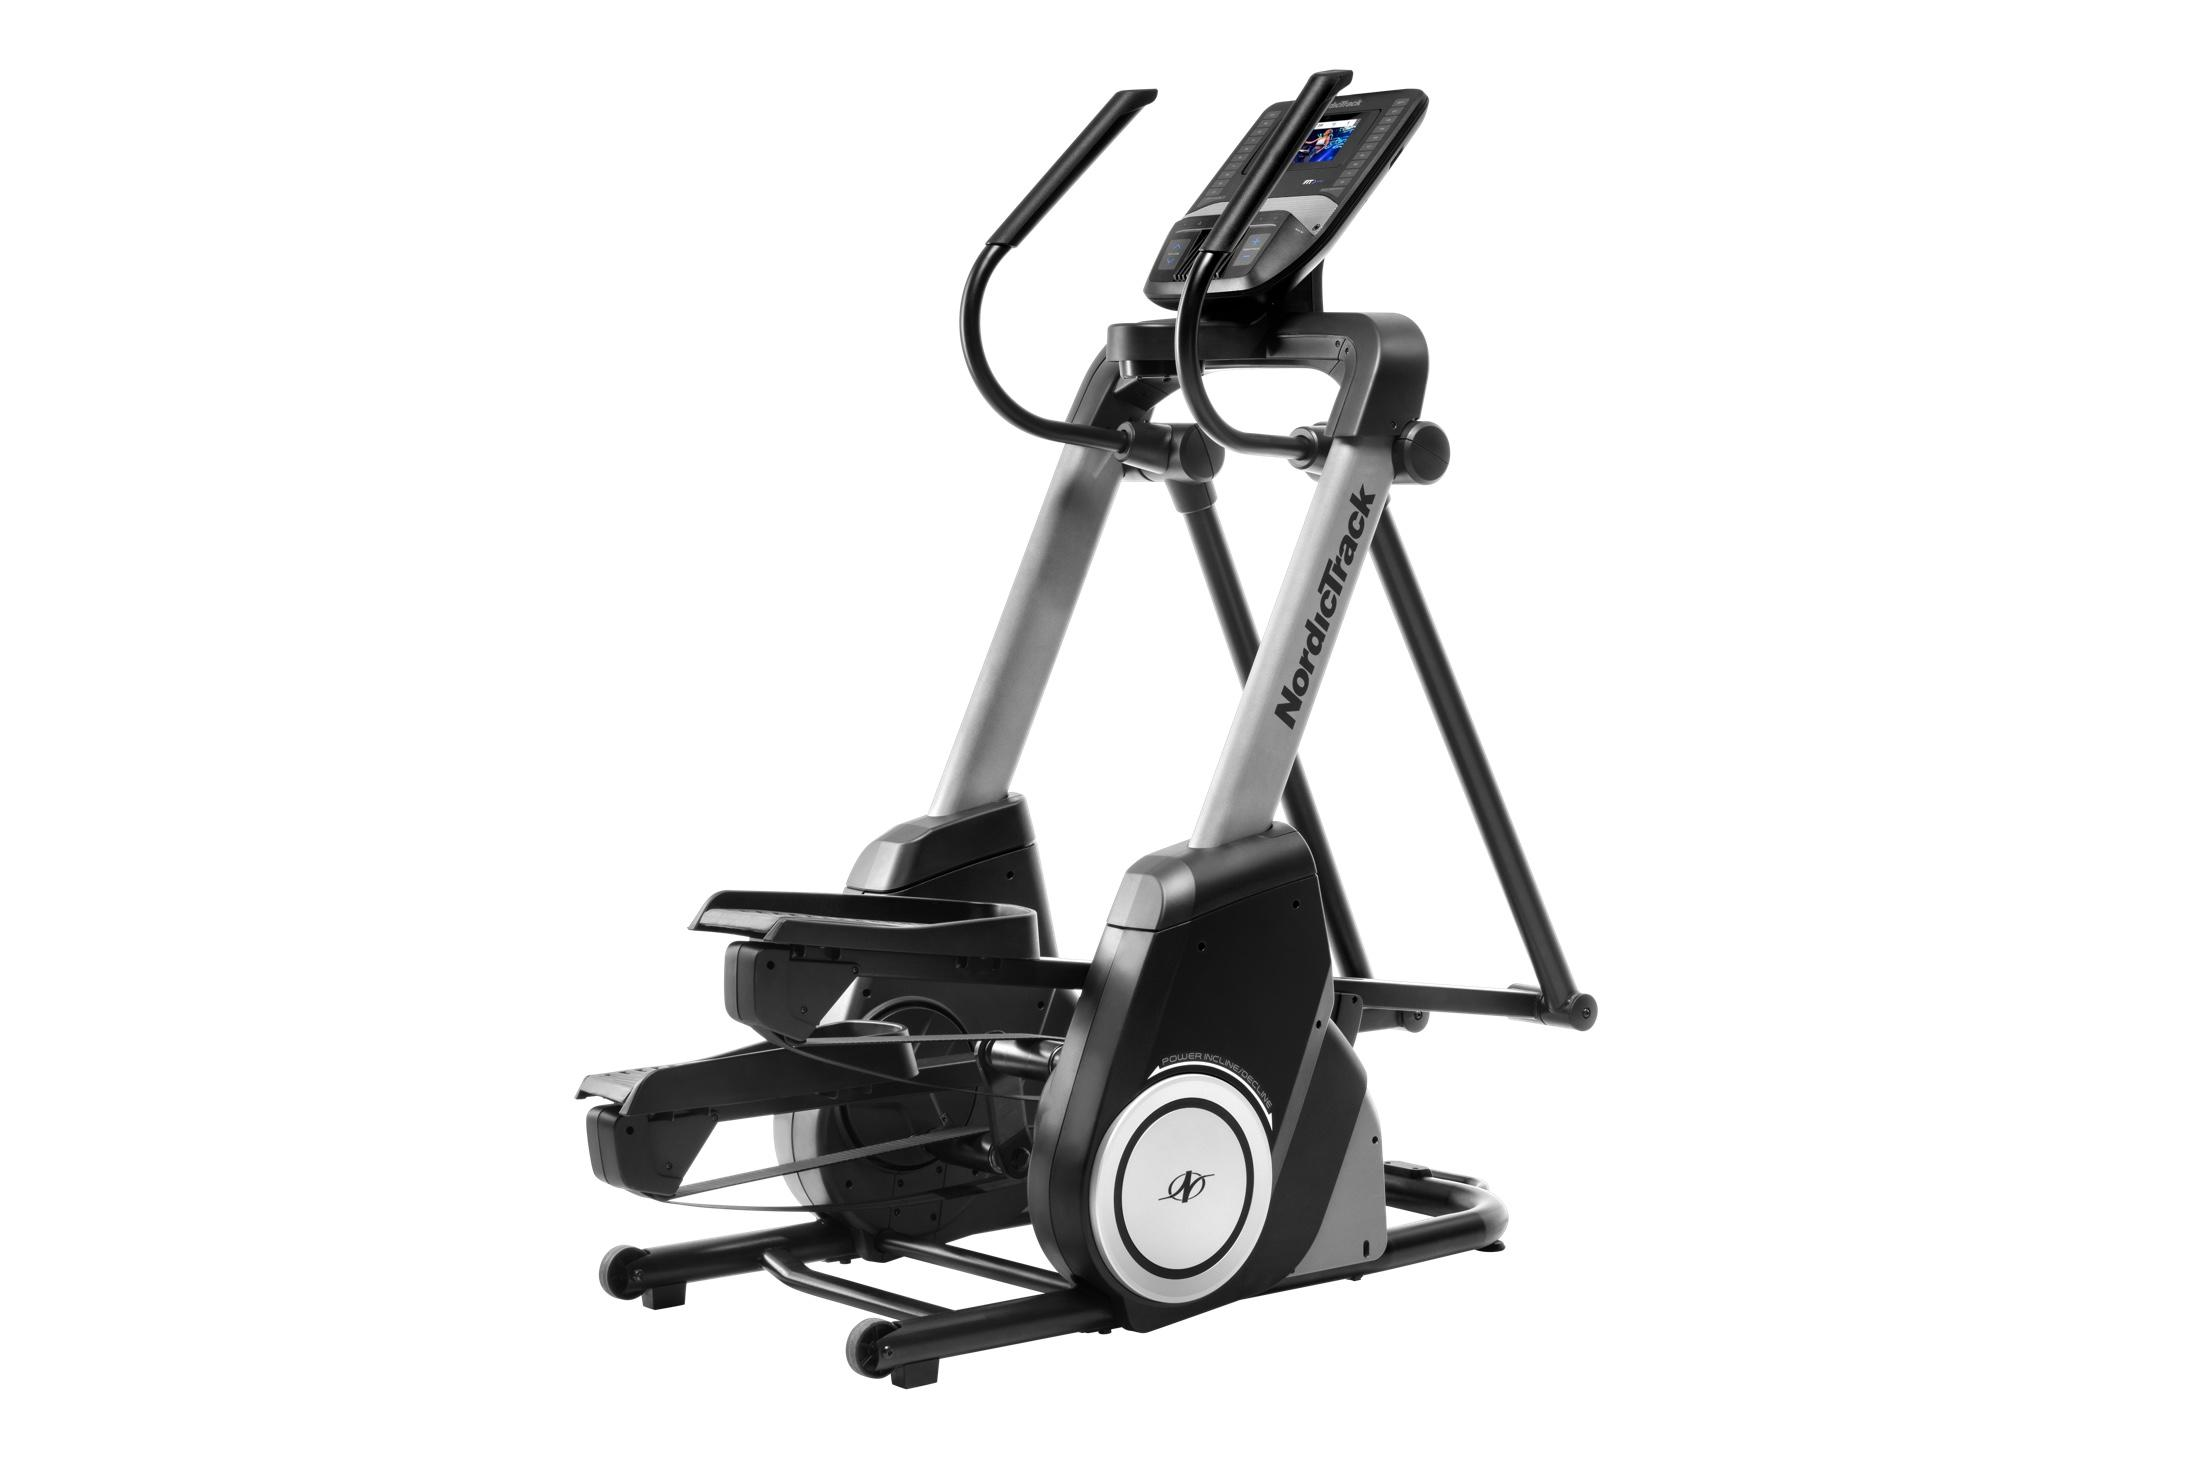 Best Home Elliptical 2019 Best Home Ellipticals of 2019   EllipticalReviews.com